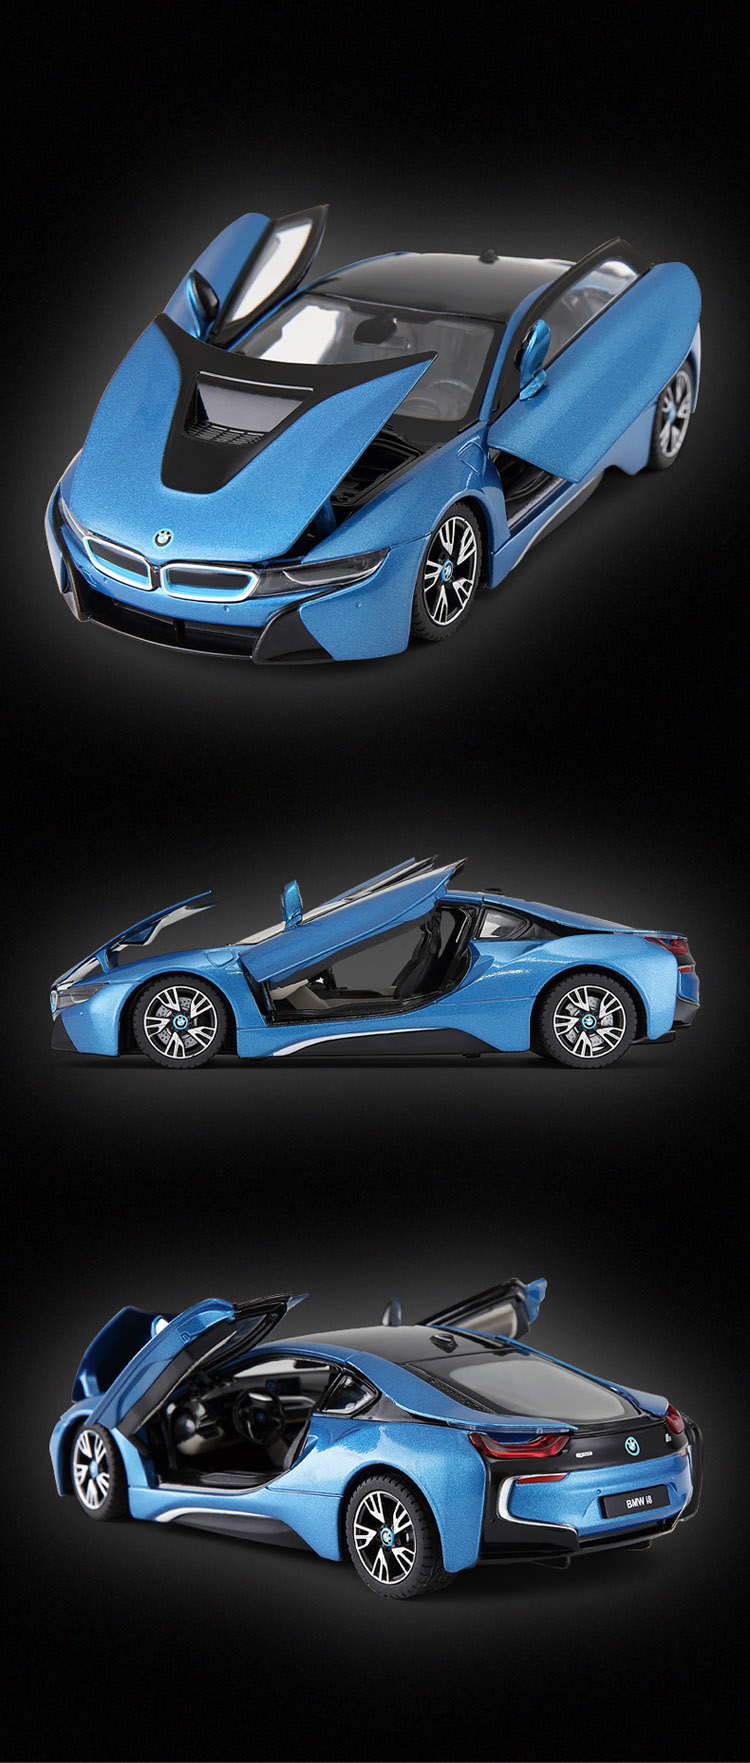 Scale 1 24 Bmw I8 Car Diecast Toy Vehicles Buy Car Diecast Toy